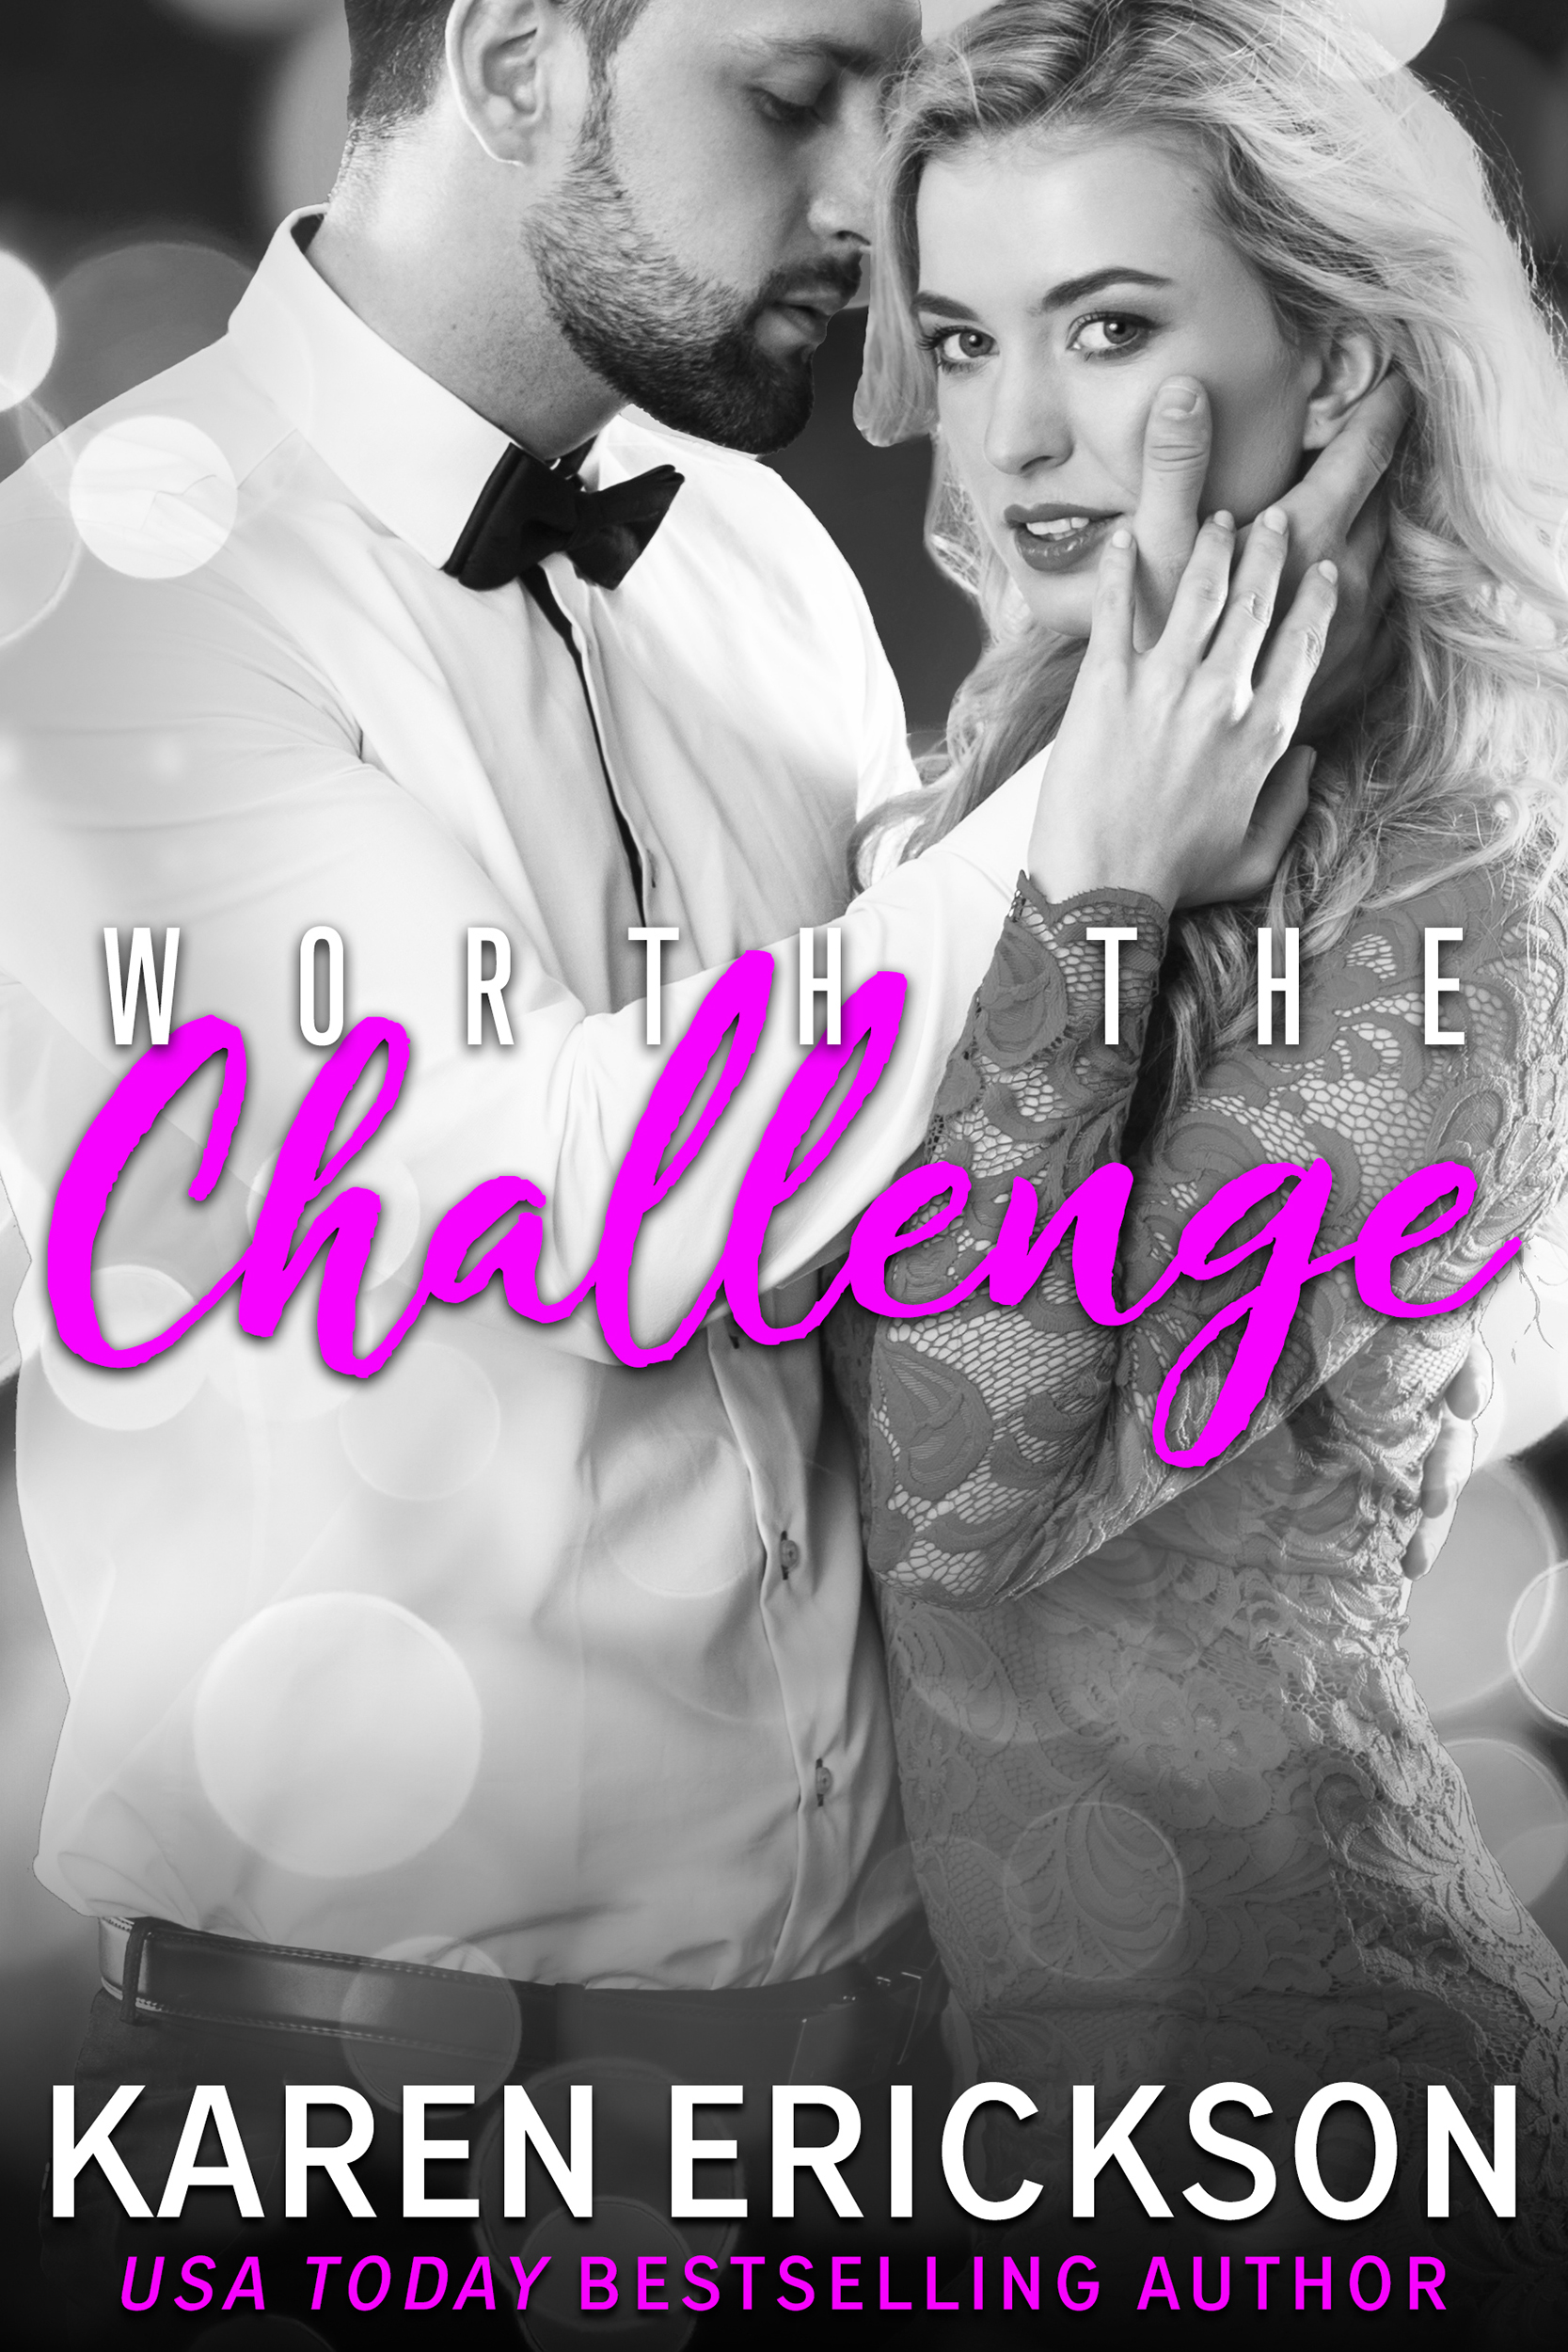 Worth The Challenge - Worth It, Book 3Amazon •B&N •iBooks •Kobo •GooglePlayCan you capture magic in a bottle?Rhett Worth has never lived up to his potential. He's ready to prove to his older brothers that he's more than his good looks; that he adds value to the family business beyond his panty-dropping smile. Except that the one job he was given, developing and delivering Worth Luxury's signature scent, has wafted away along with the perfumer.Gabriella Durand enters the boardroom prepared to beg the Worths to give her father a second chance at creating the blend he was tasked with. Instead, she finds the devastatingly handsome Rhett presenting her as the second chance. Hungry to step out of her family's shadow, she plays along.Soon, the two find themselves in Maui, hunting for the perfect scent. Despite his vow of professionalism, Rhett can't fight the passion between him and Gabriella.The tropical breeze that washes across their intertwined bodies offers salvation, but a whiff of betrayal threatens to destroy everything.Amazon •B&N •iBooks •Kobo •GooglePlay